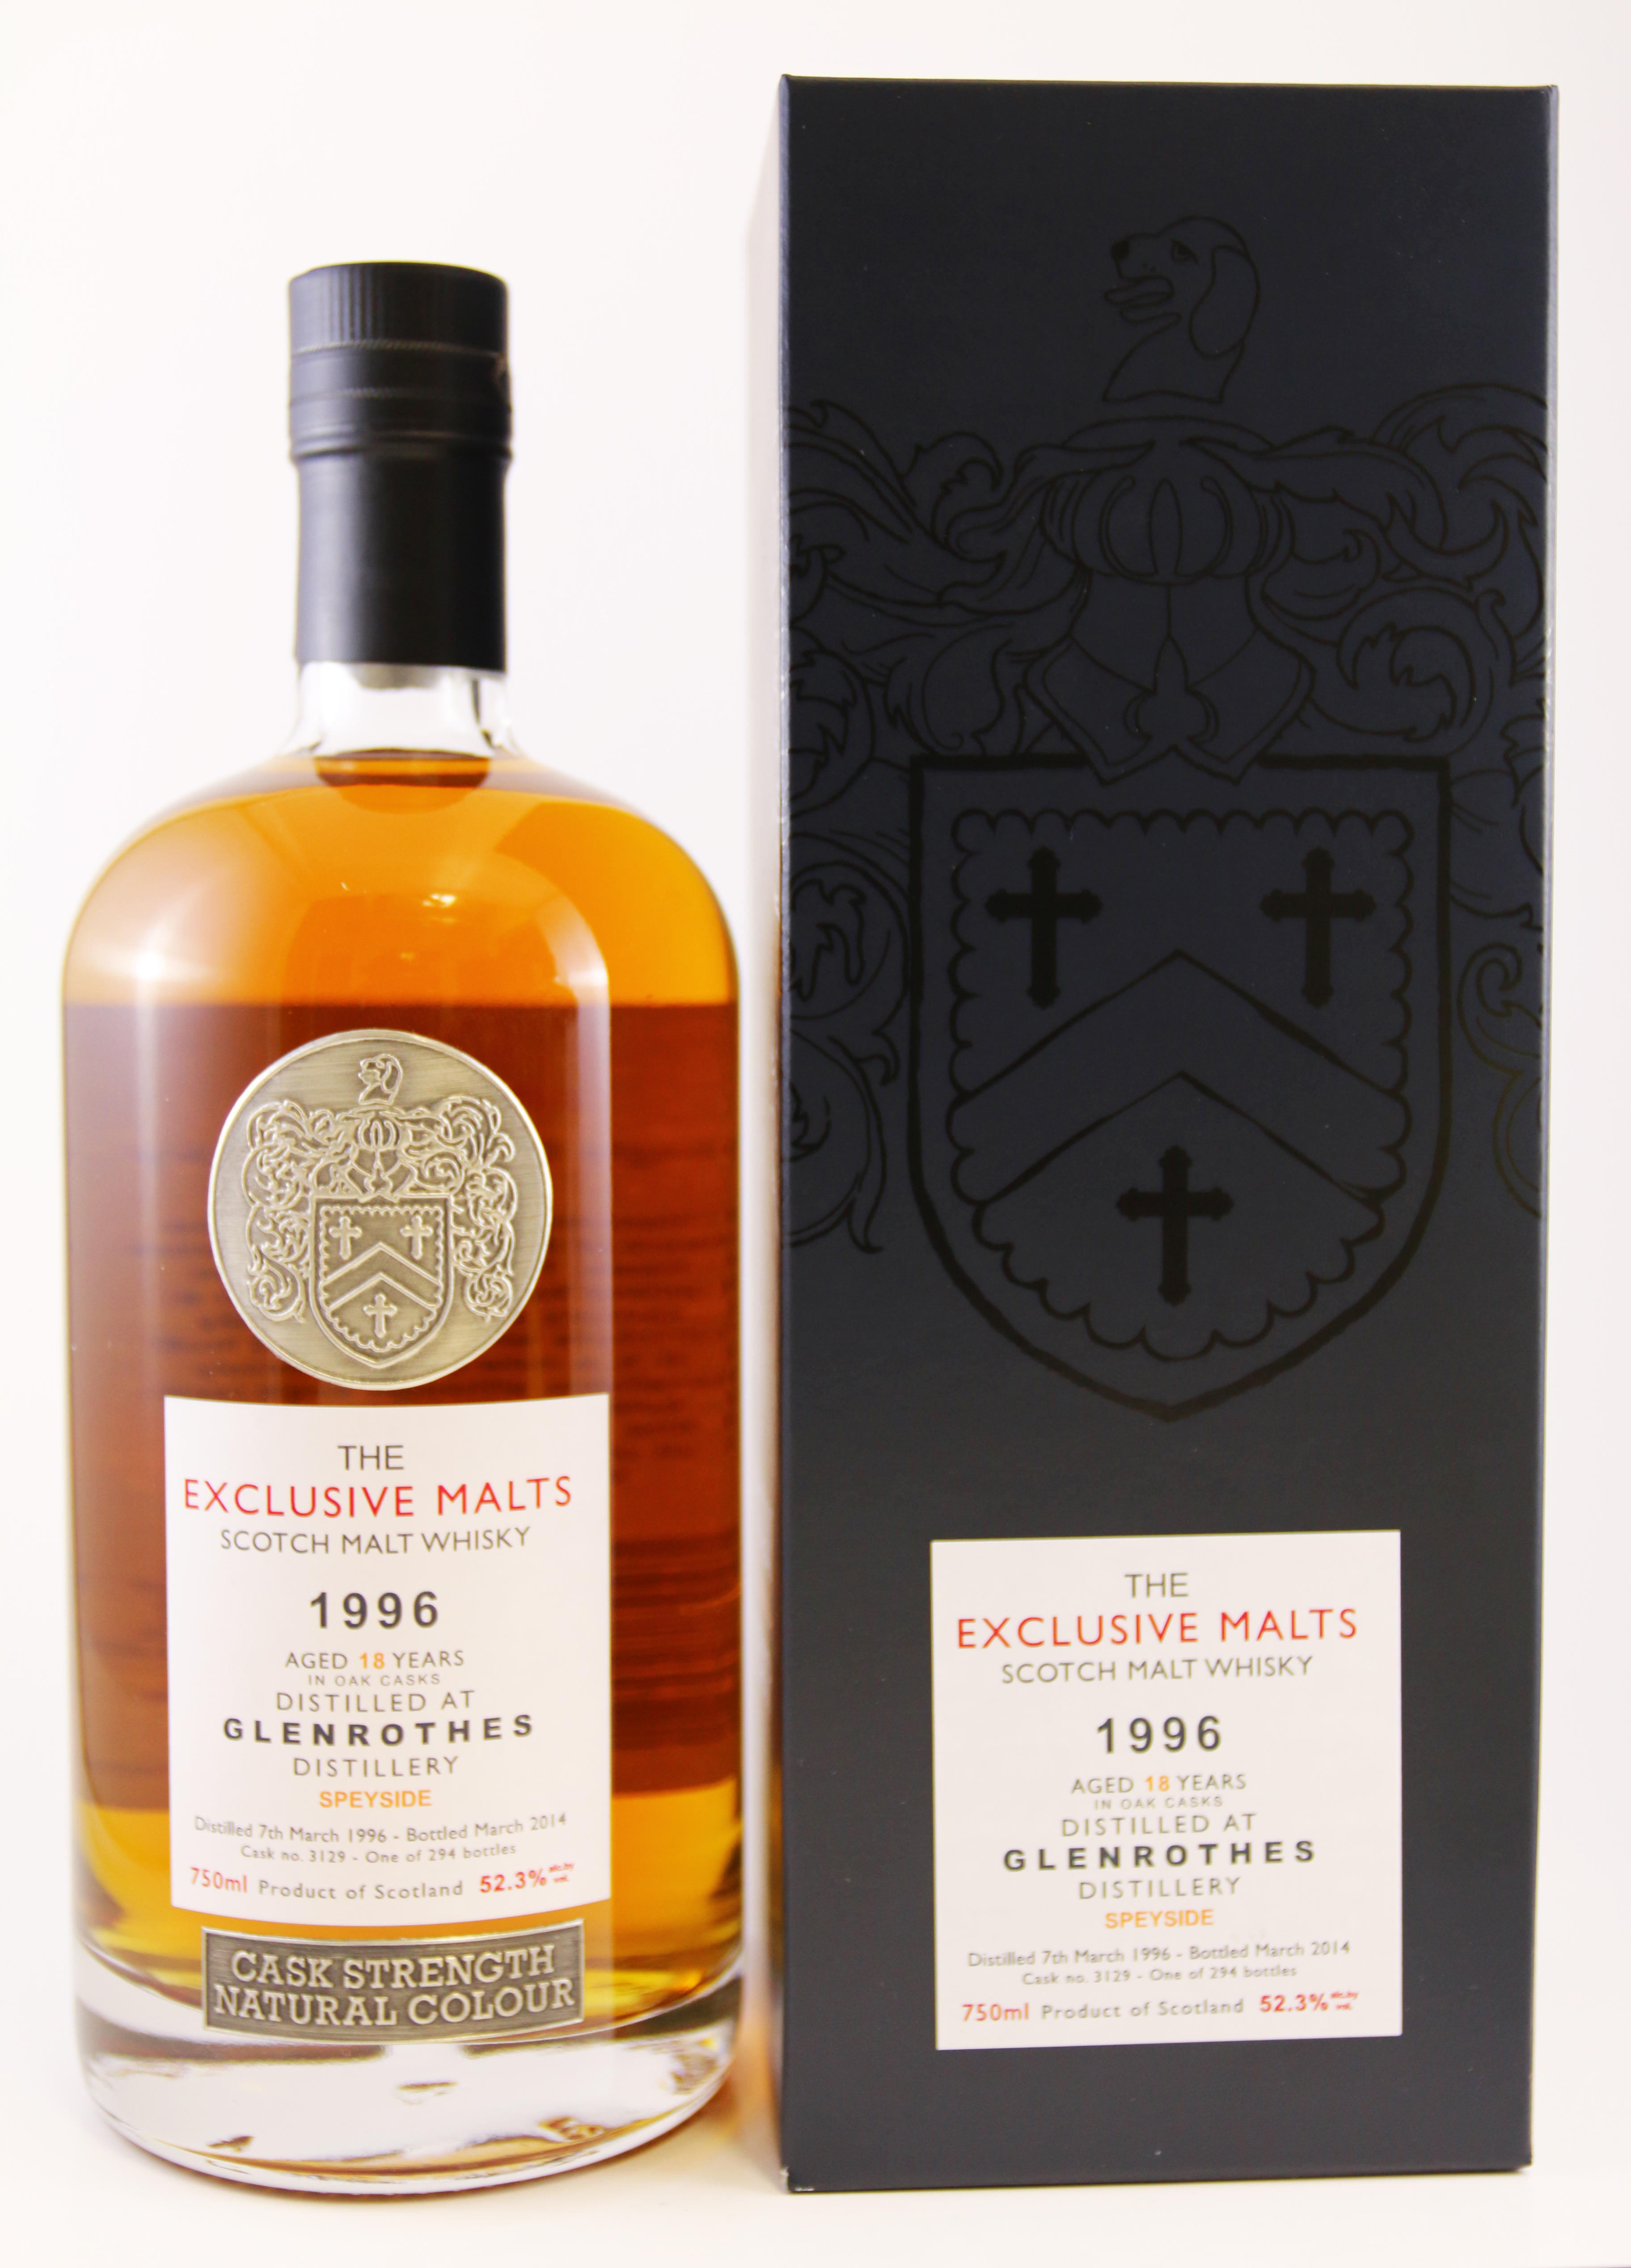 The Exclusive Malts Glenrothes 1996 18 Years Old